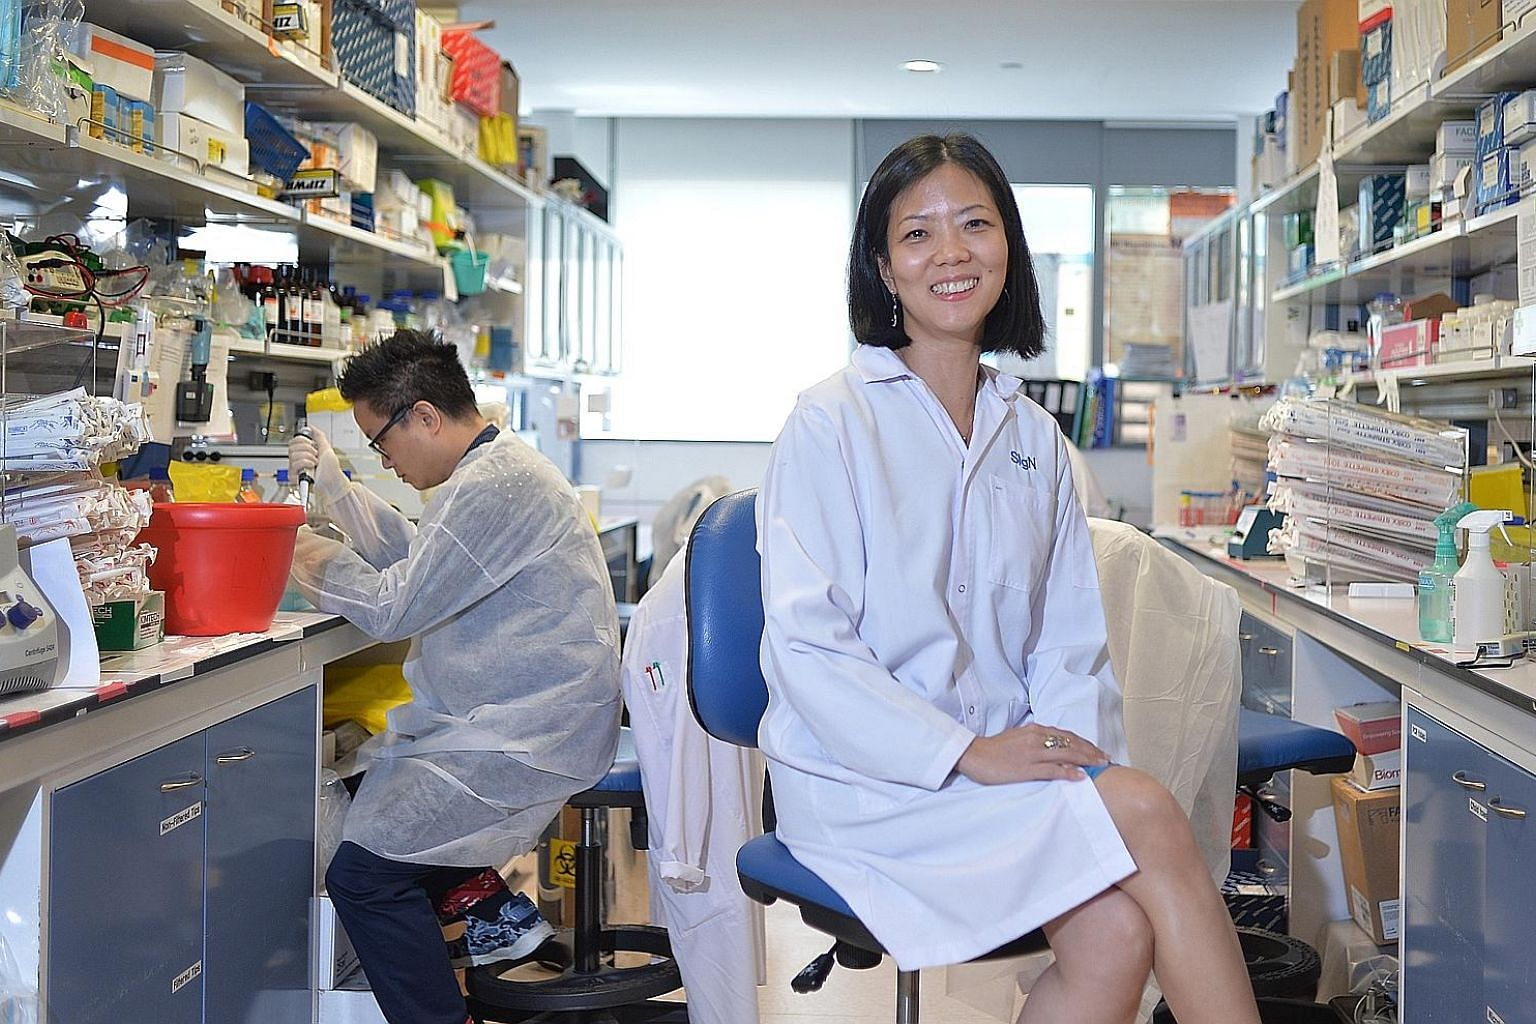 Dr Lisa Ng says with some pride that the work done by Singapore scientists in profiling chikungunya is probably unmatched, and used by researchers elsewhere as a benchmark.